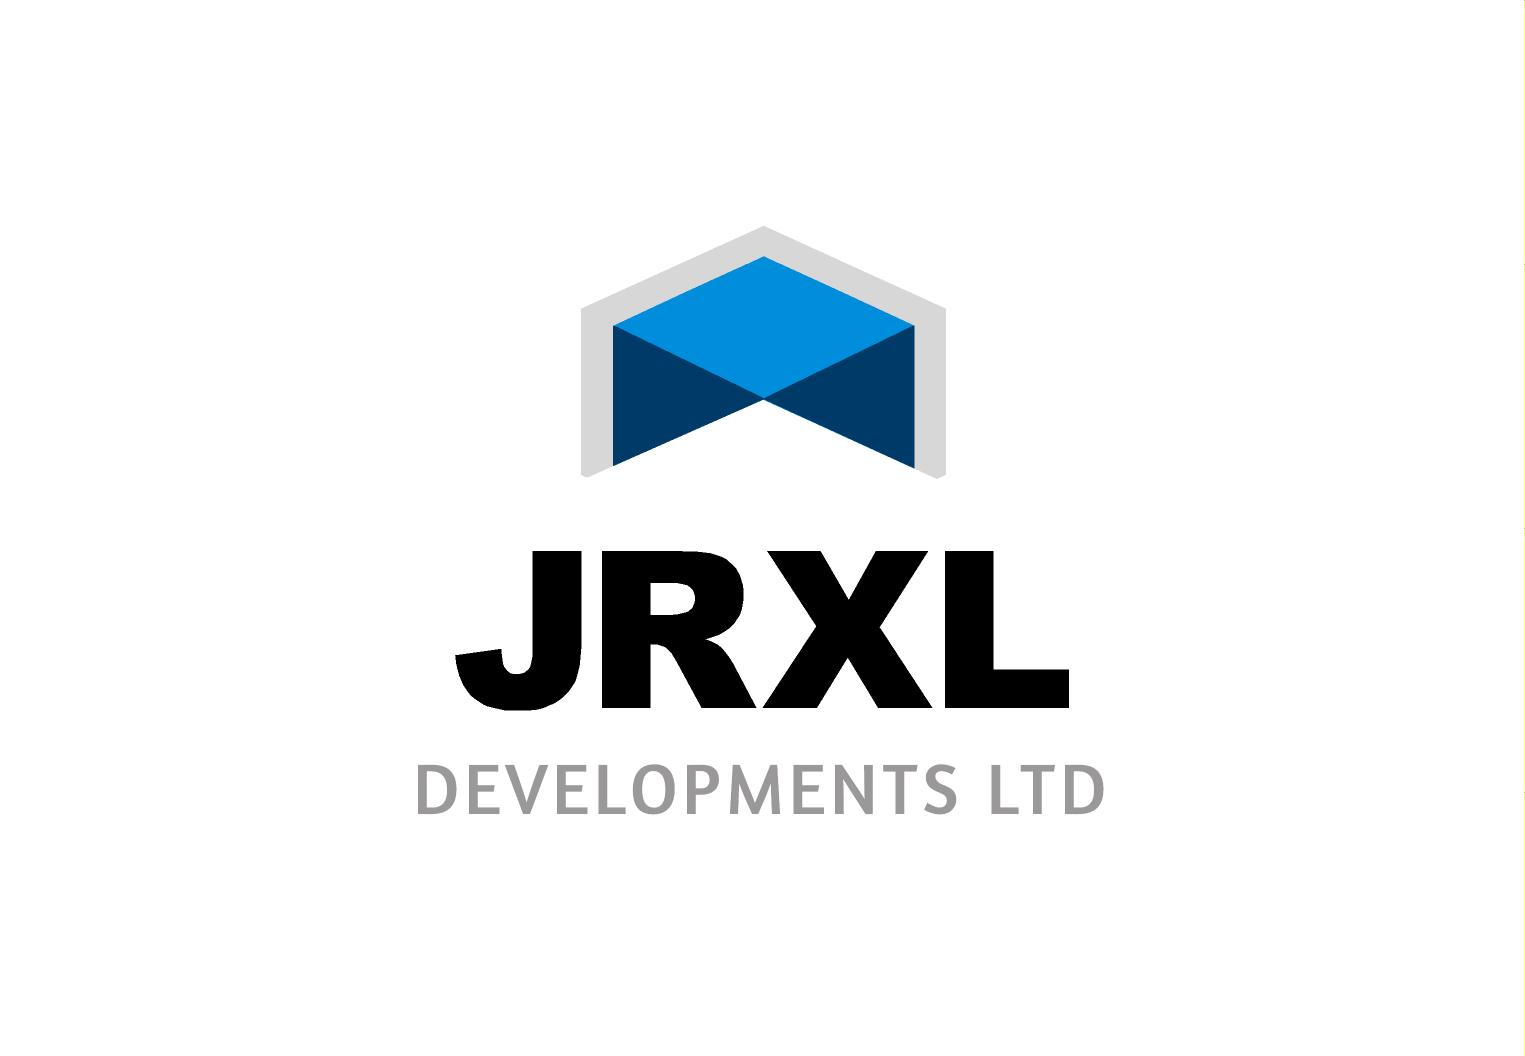 Logo Design by ZAYYADI AHMAD - Entry No. 57 in the Logo Design Contest JRXL DEVELOPMENTS LTD Logo Design.